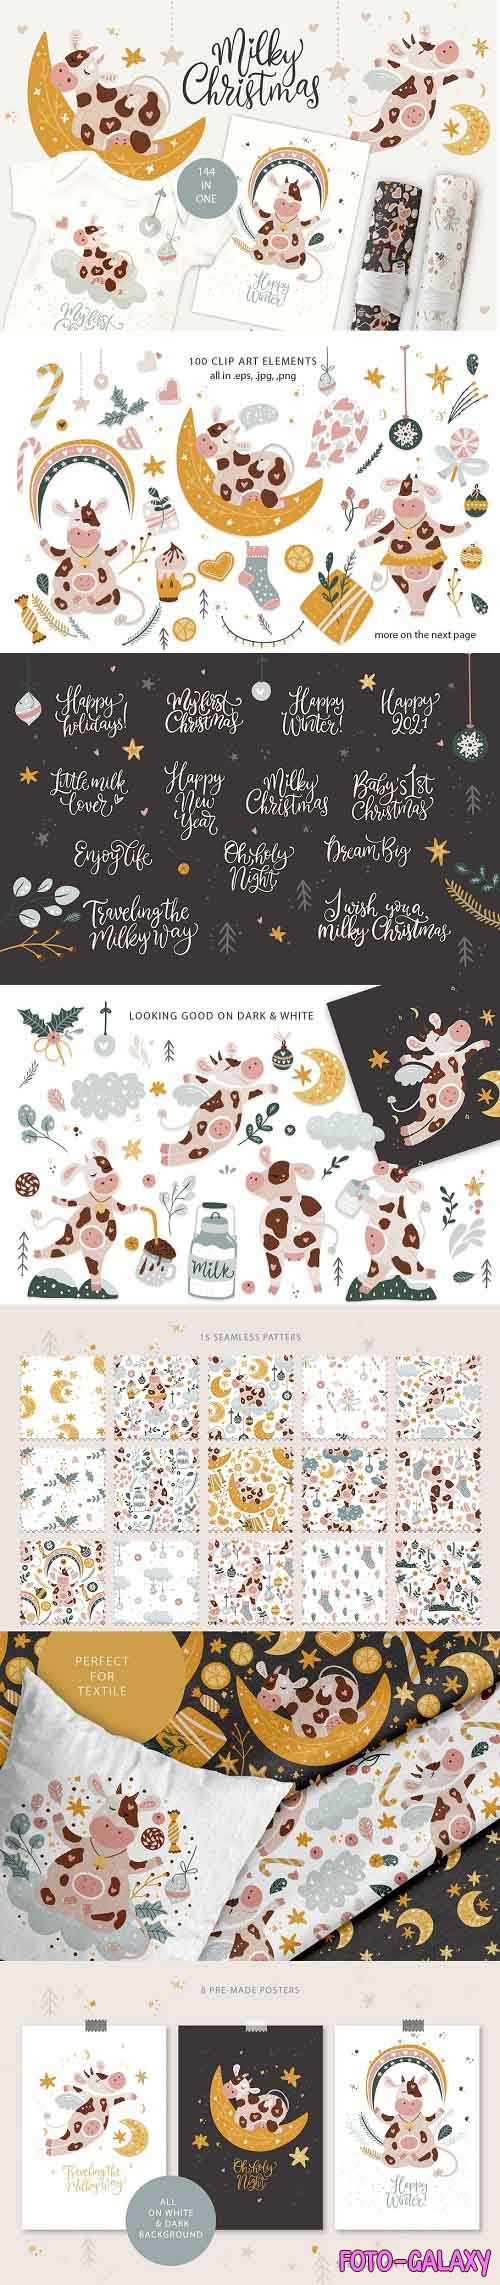 Milky Christmas. Christmas Cow Pack - 5461271